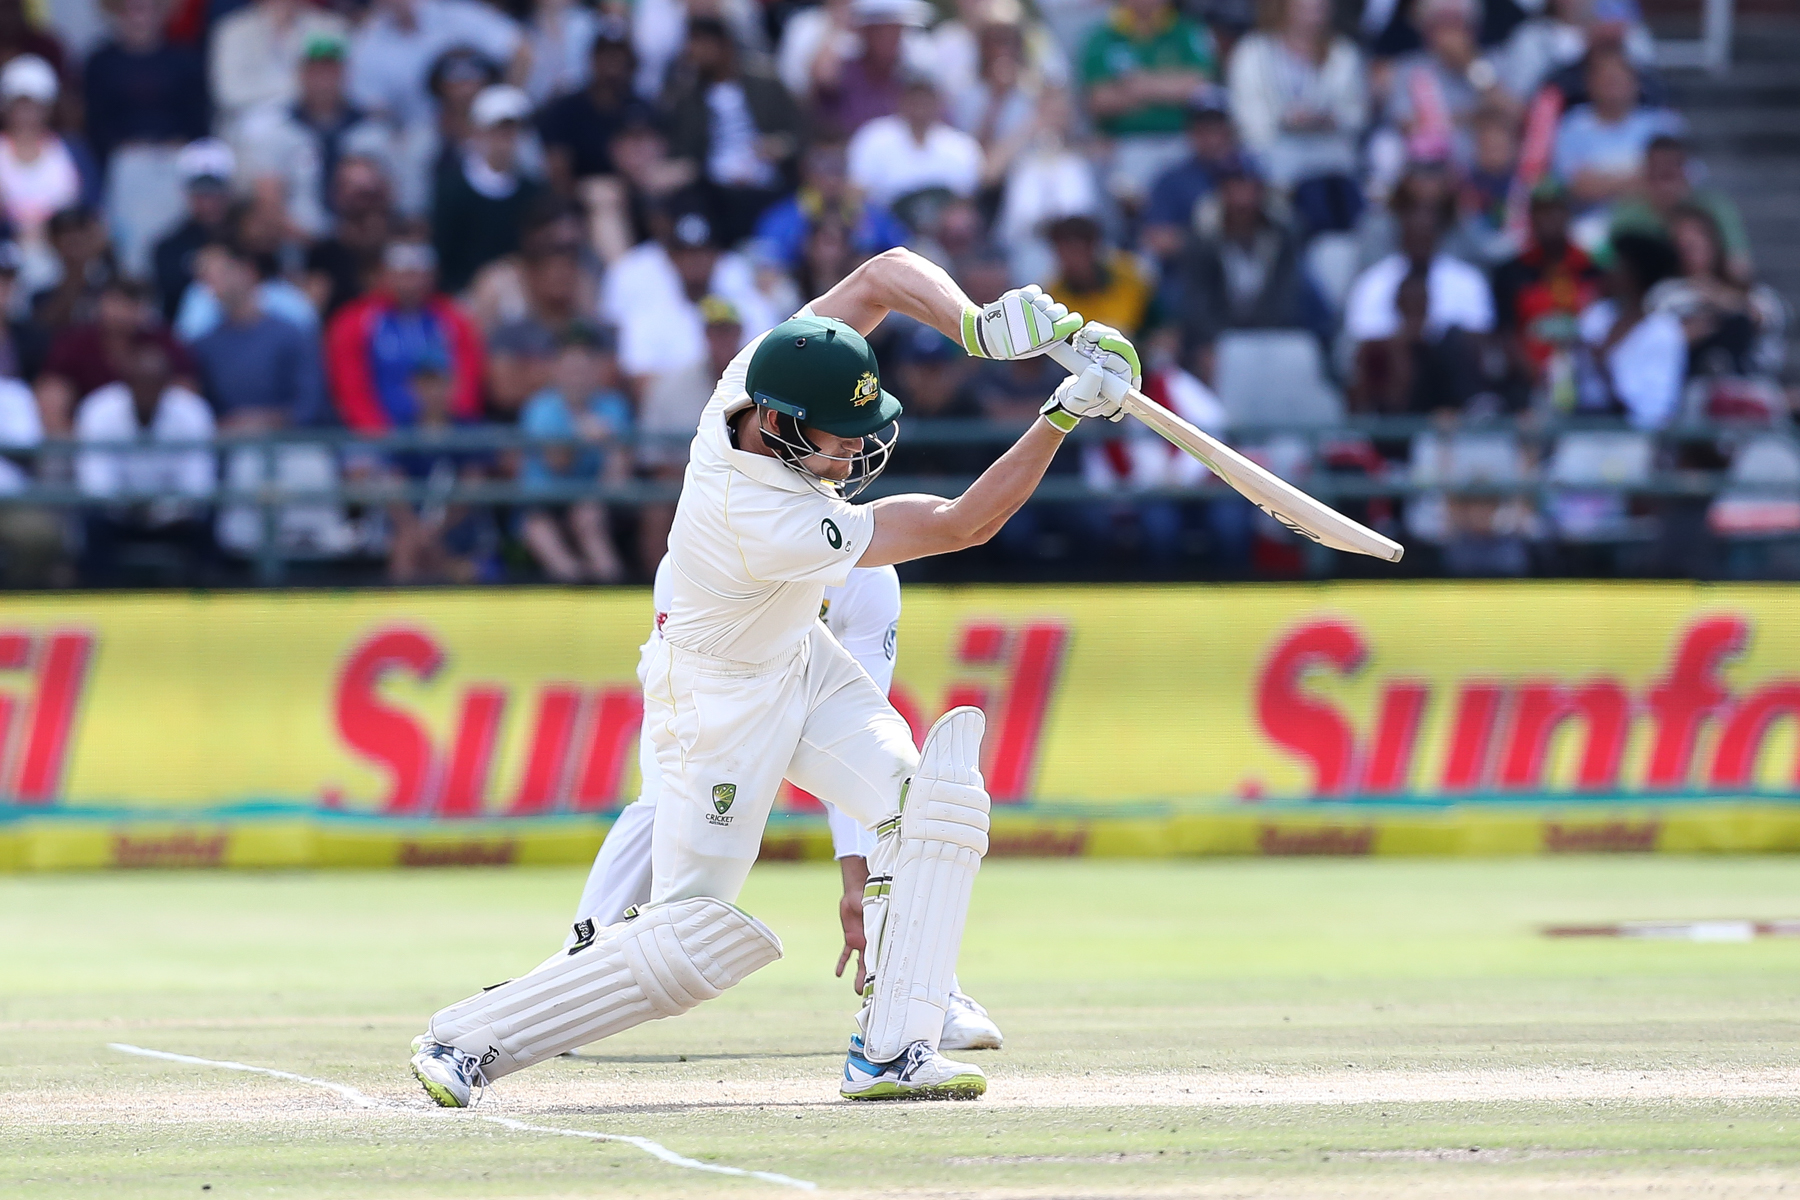 CAPE TOWN, SOUTH AFRICA - MARCH 25: Cameron Bancroft of Australia during day 4 of the 3rd Sunfoil Test match between South Africa and Australia at PPC Newlands on March 25, 2018 in Cape Town, South Africa. (Photo by EJ Langer/Gallo Images/Getty Images)